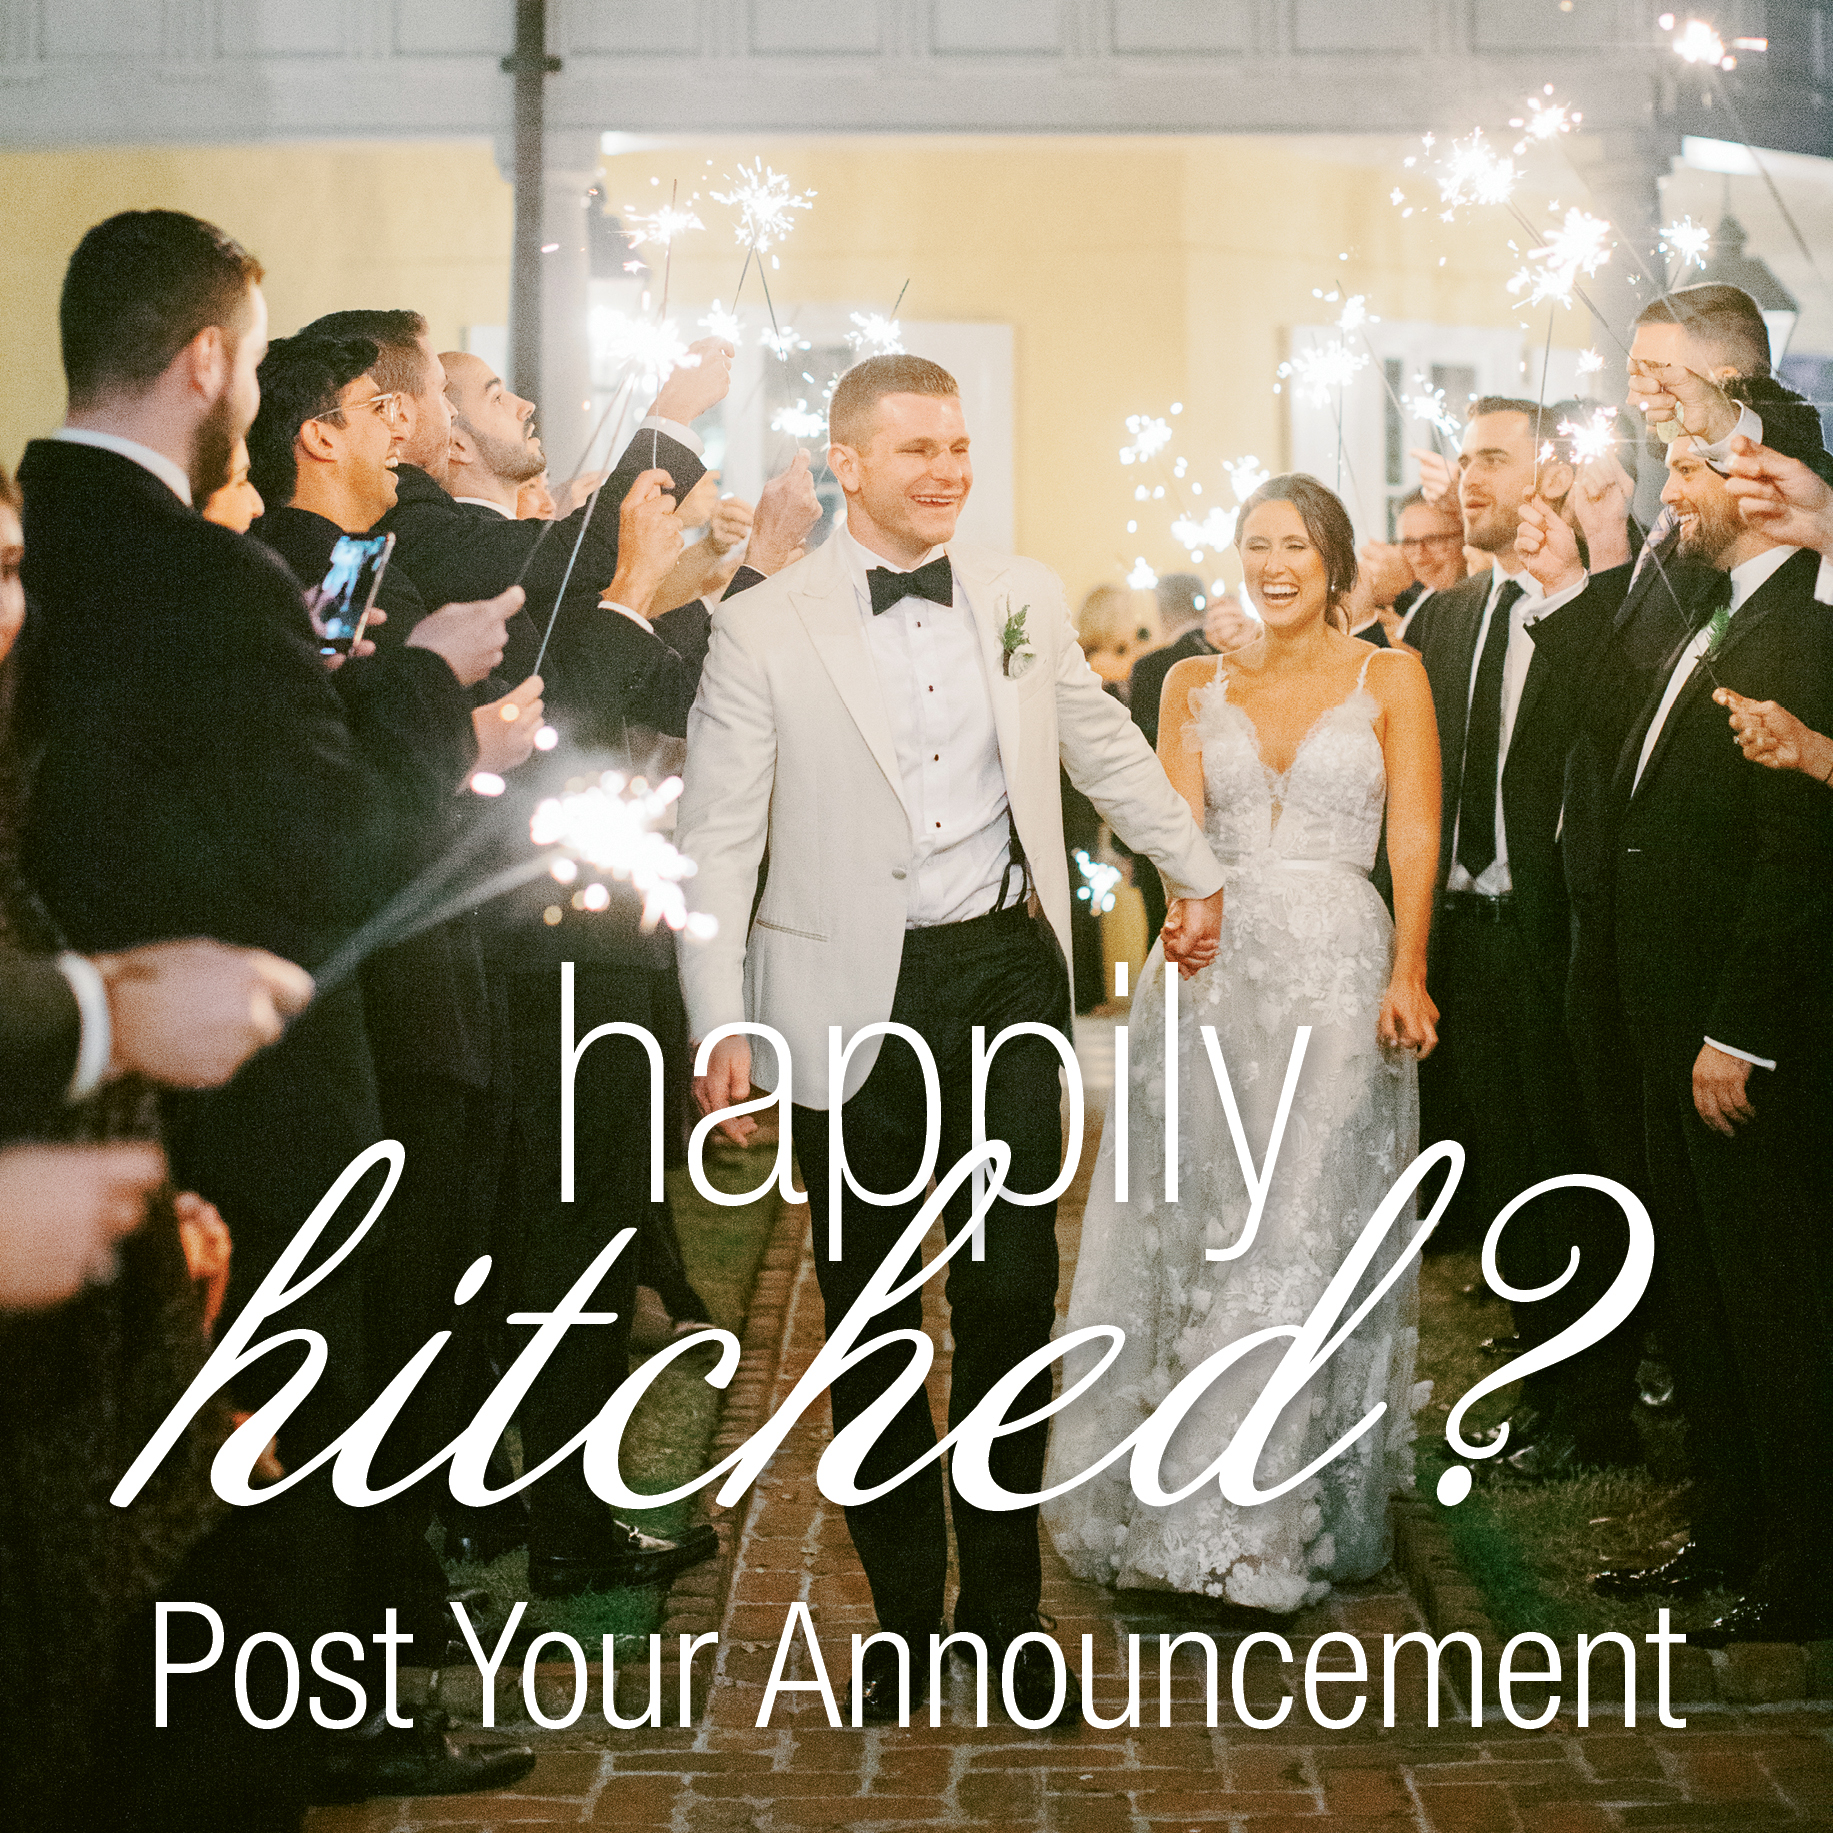 Post Your Wedding Announcement